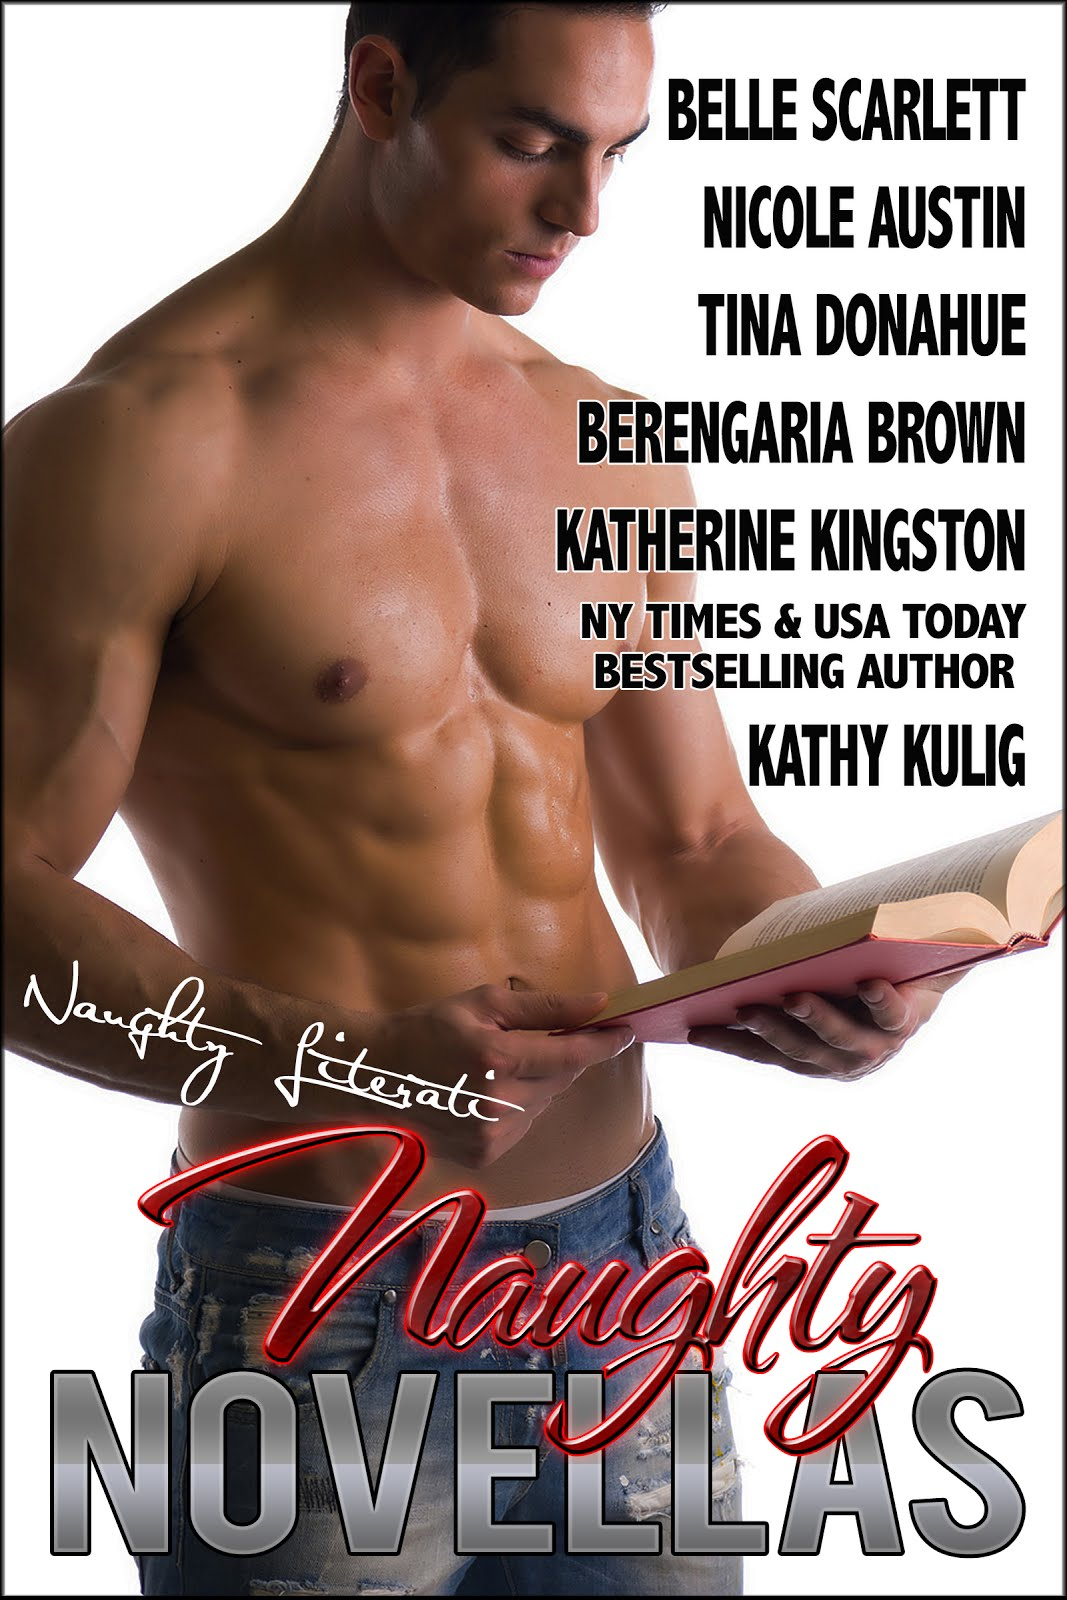 Naughty Novellas - Tropic of Pleasure & Anything You Want